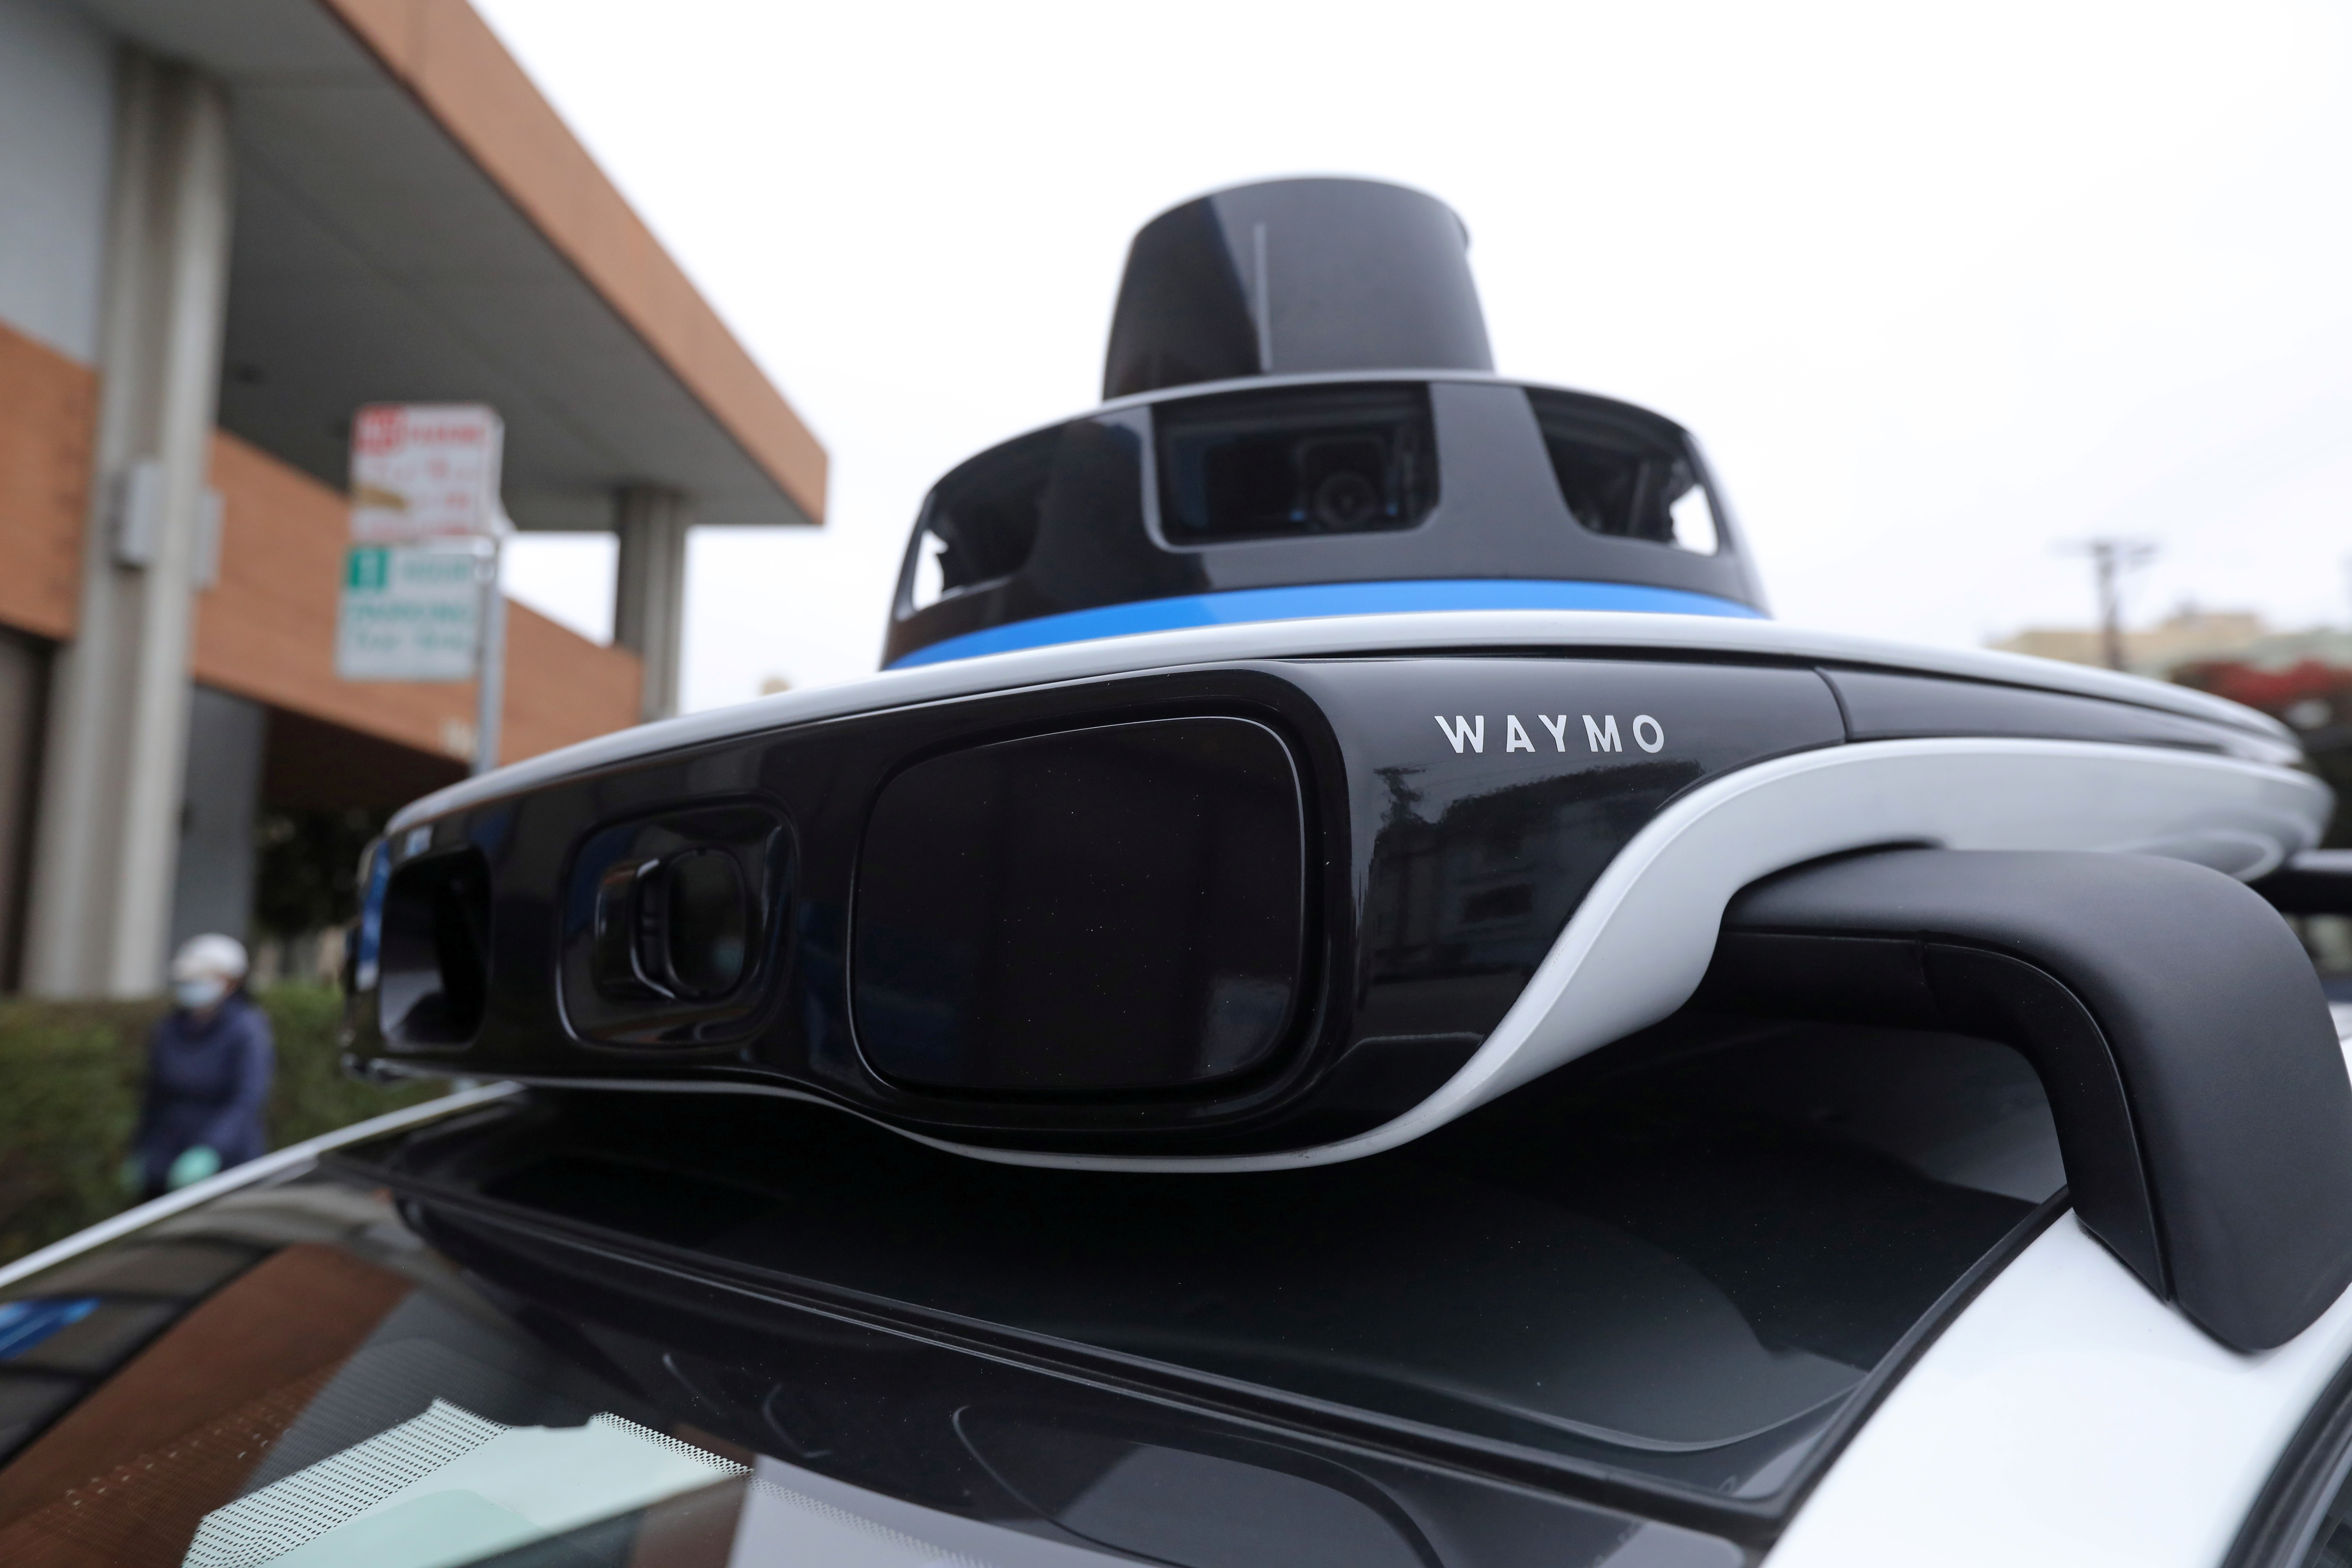 The 360 vision system with its cameras, radar panels and lidar sits atop Waymo's all-electric Jaguar I-Pace SUV in San Francisco, California, U.S., August 20, 2021. Picture taken August 20, 2021. REUTERS/Nathan Frandino